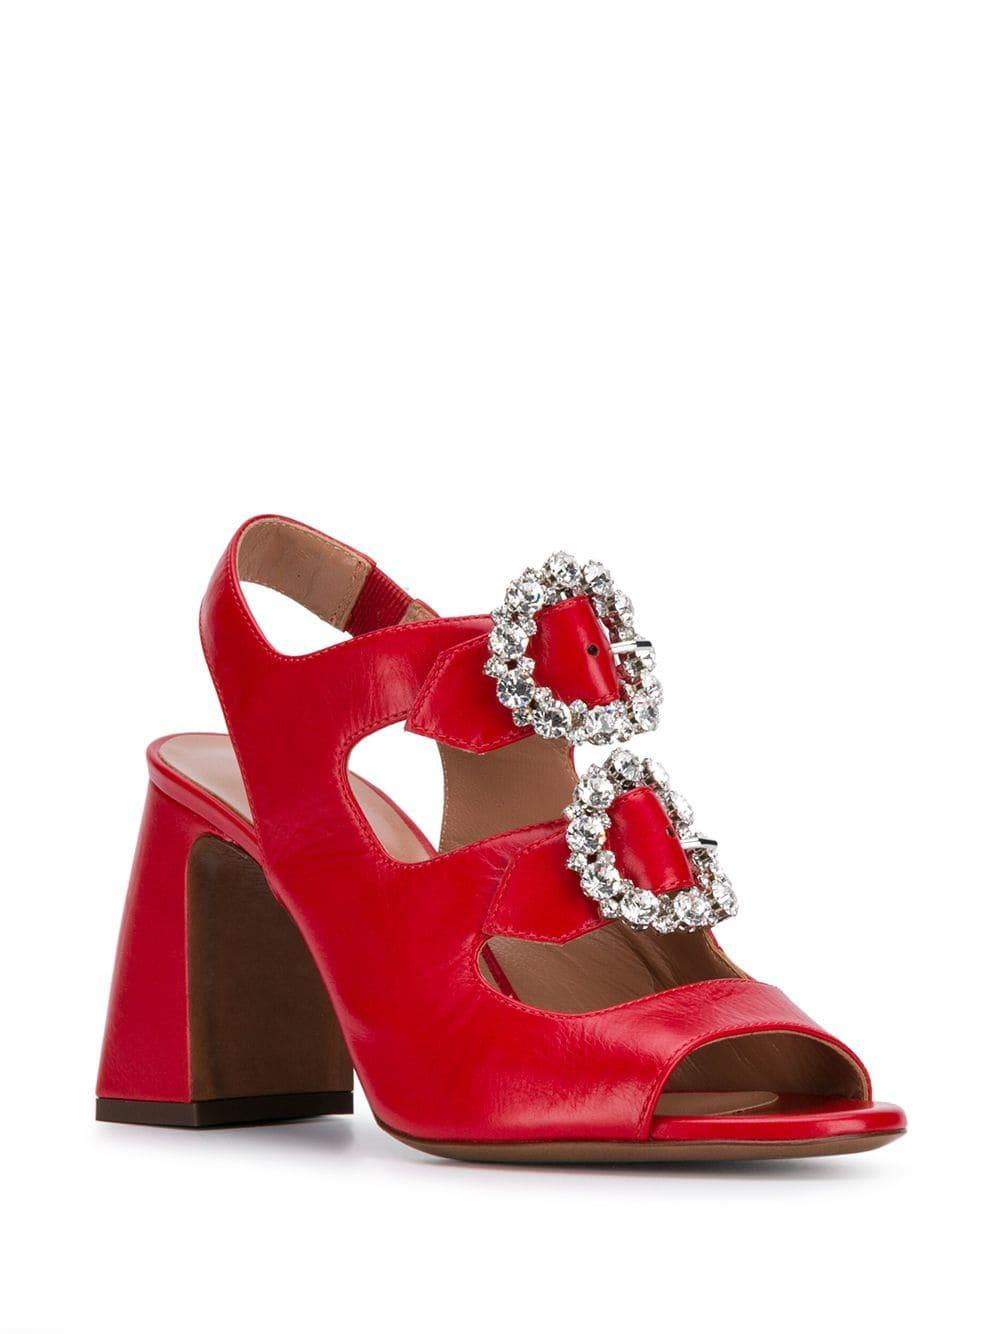 a47080742c4 Lyst - L Autre Chose Embellished Sandals in Red - Save 10%